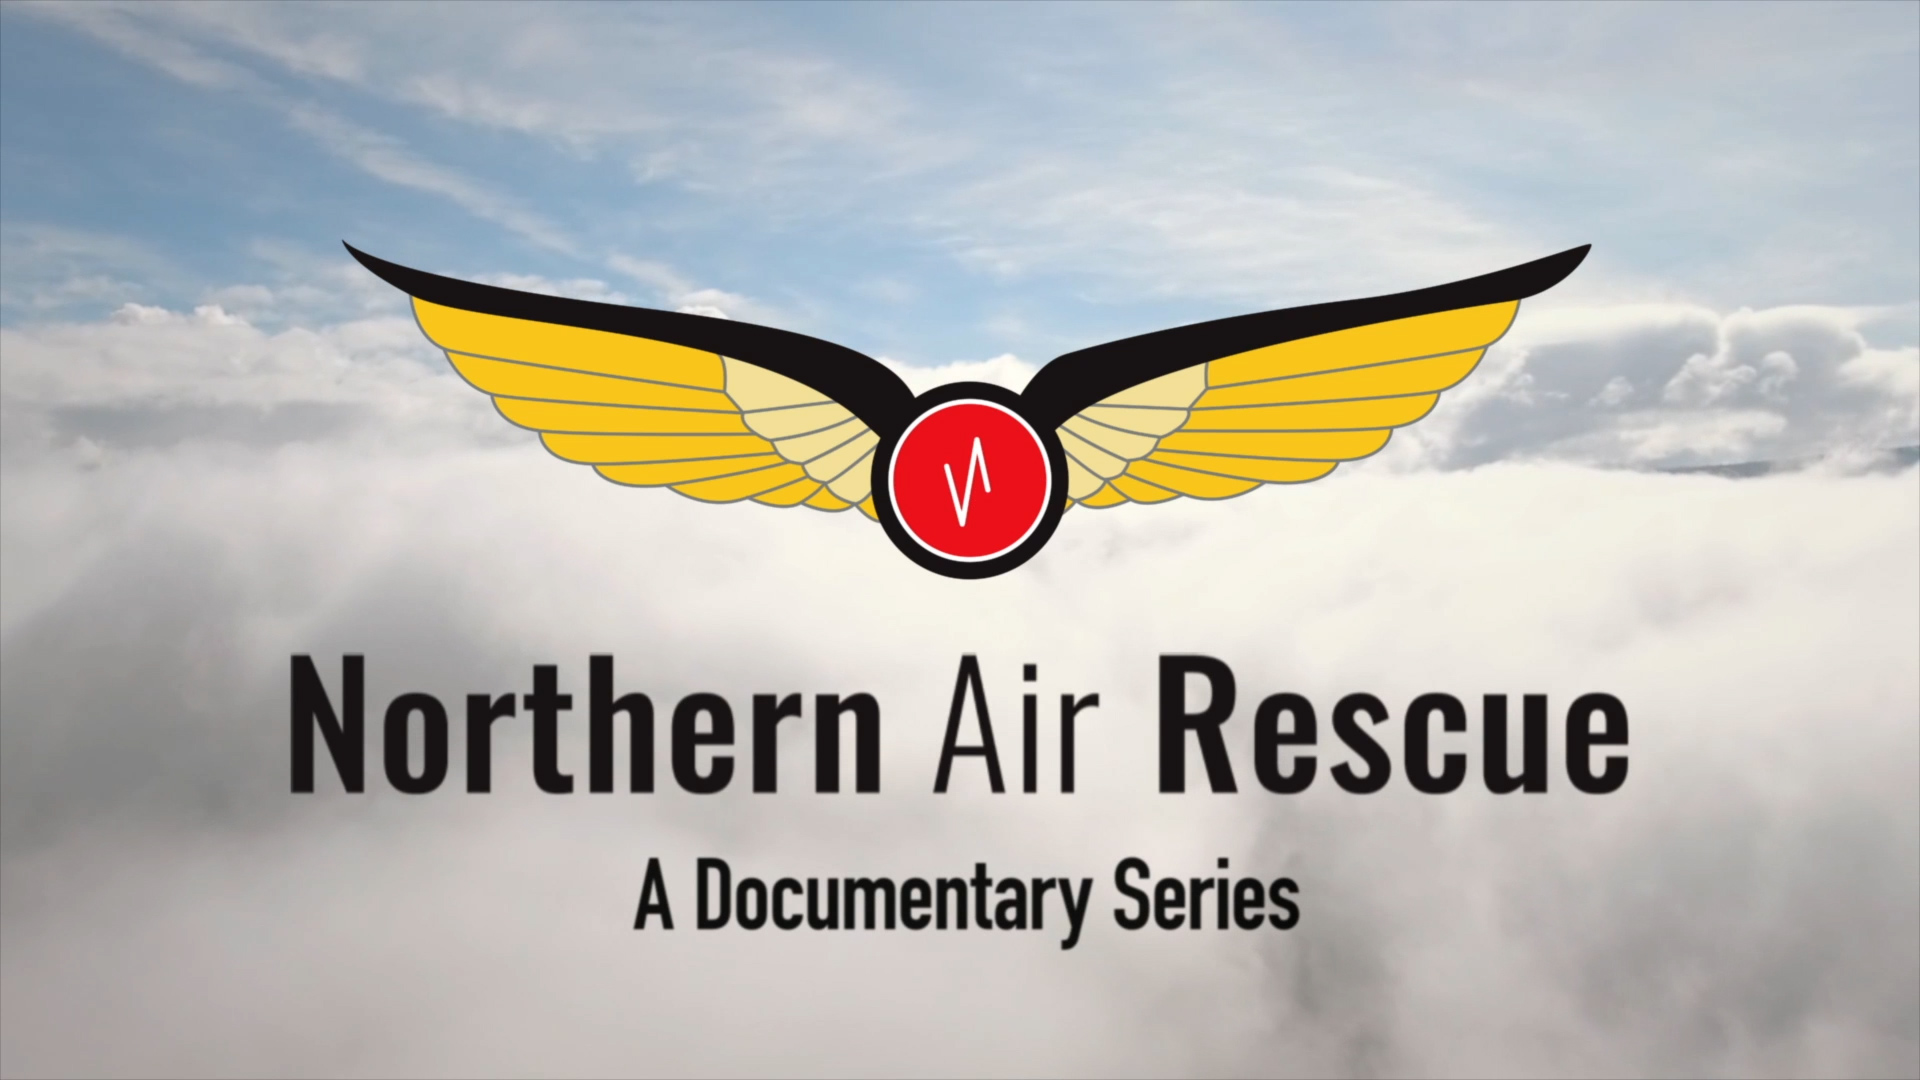 Northern Air Rescue